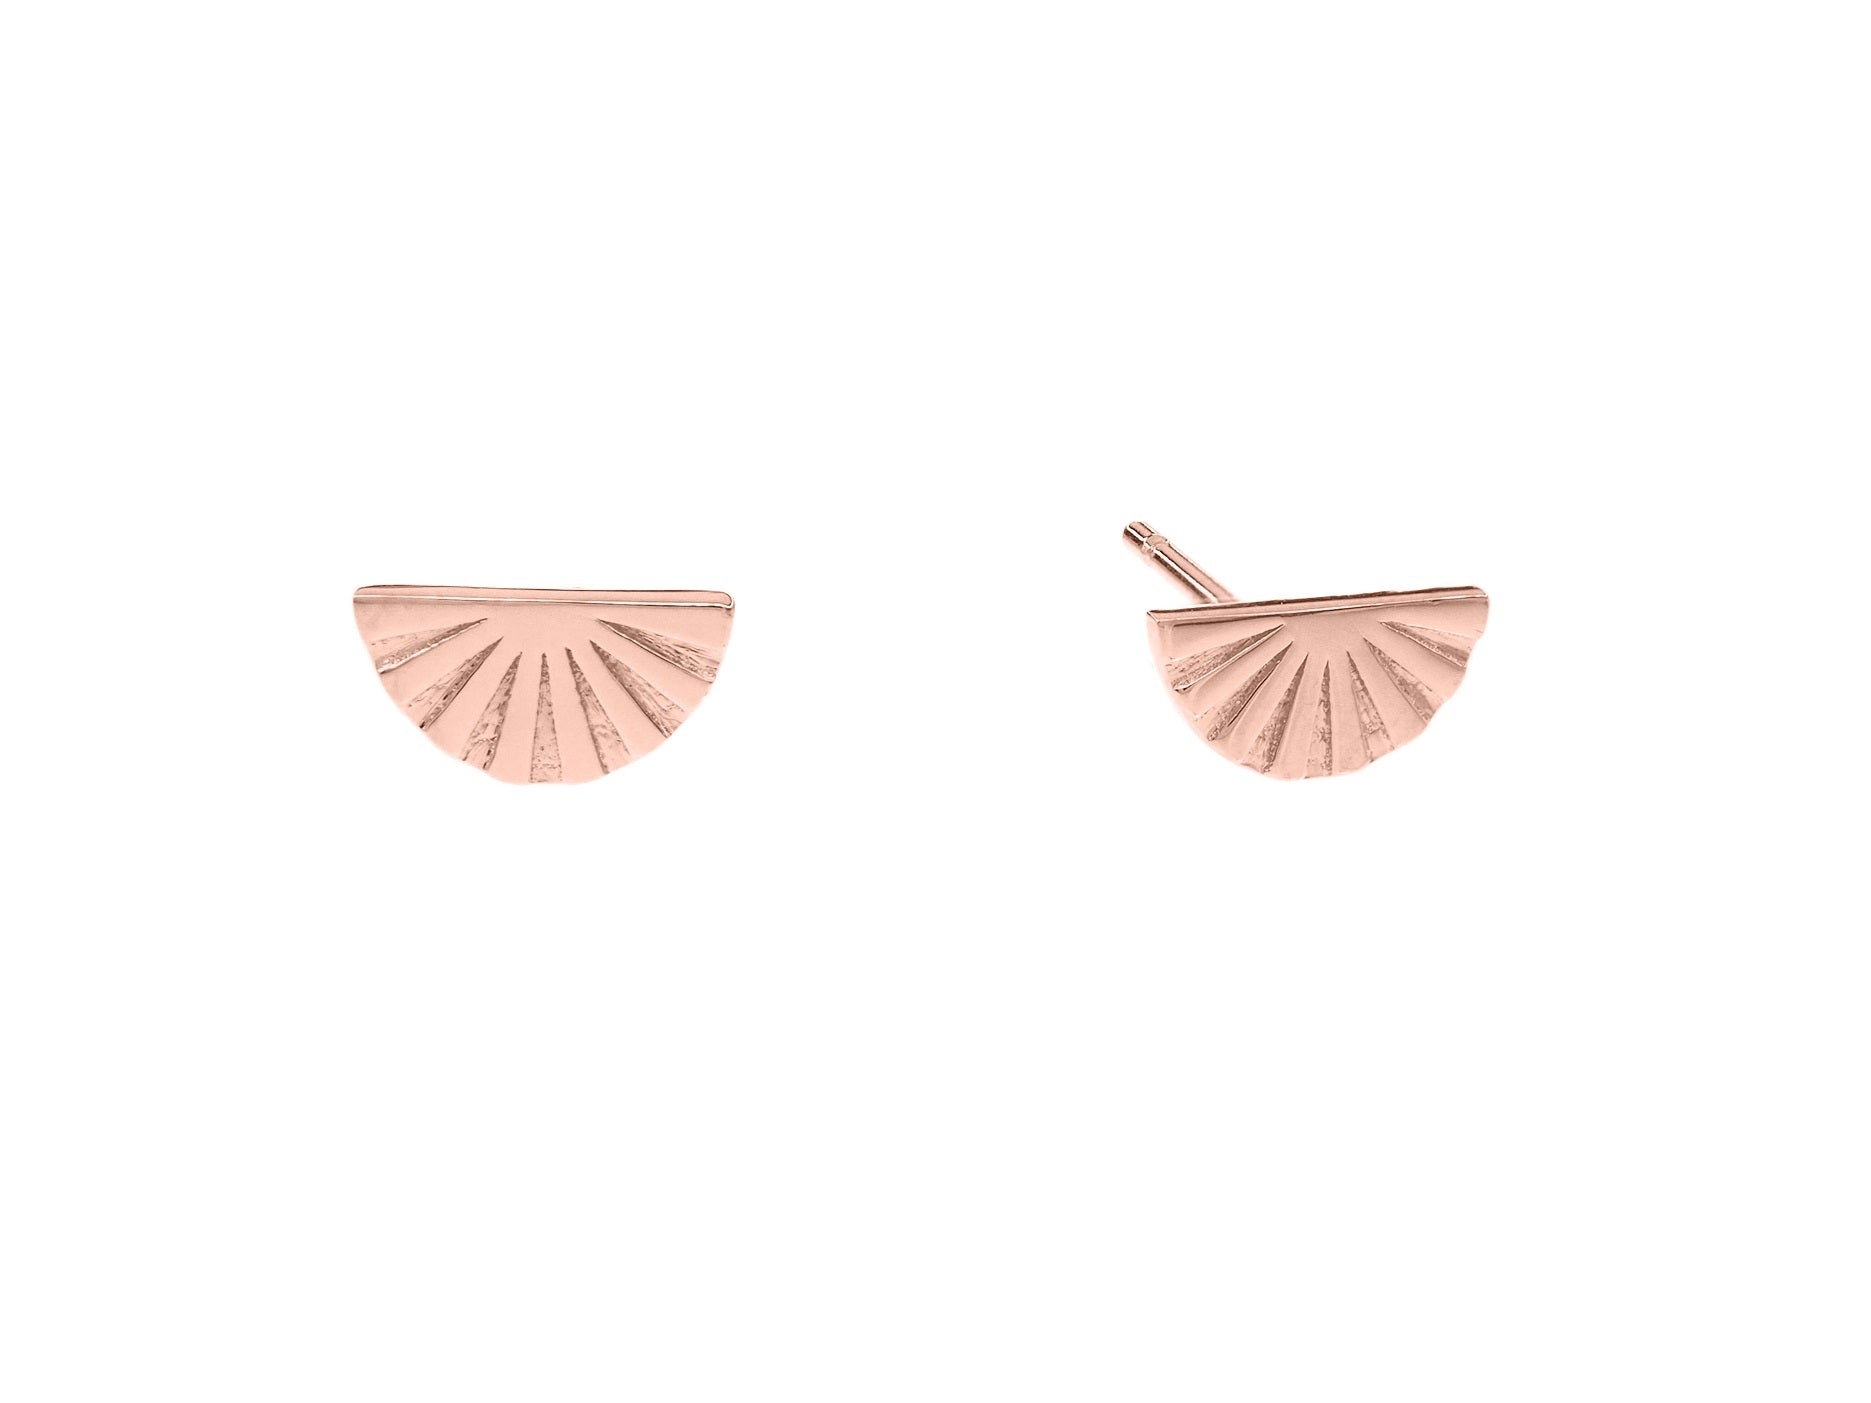 Joan of Ark mini studs, sterling silver, rose gold plated